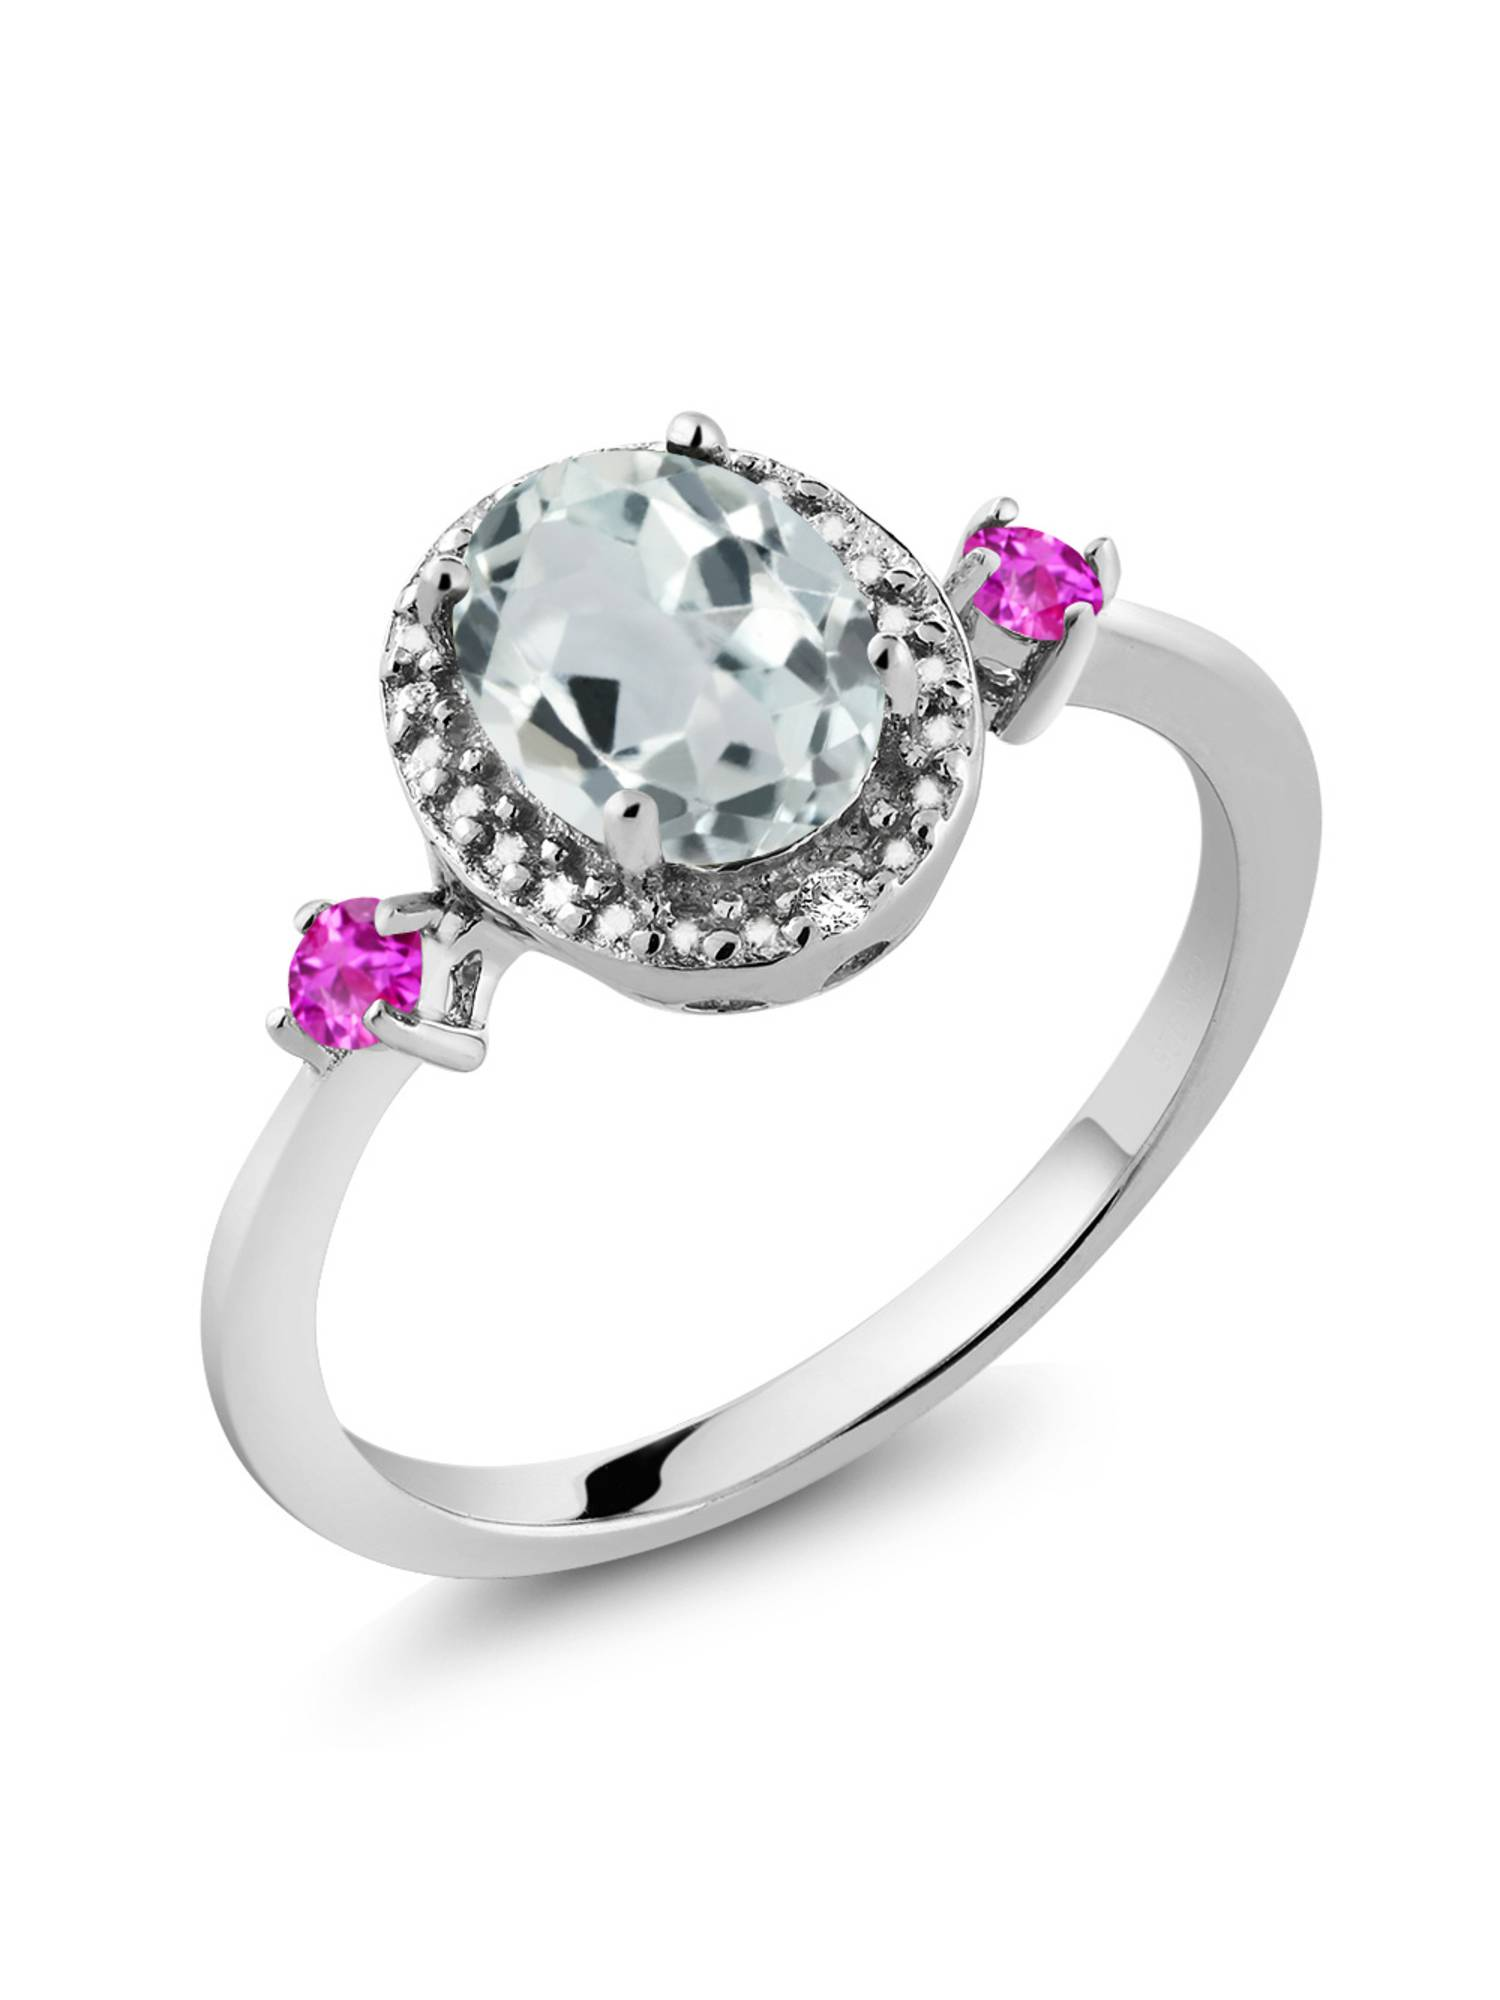 1.27 Ct Oval Sky Blue Aquamarine Pink Sapphire 925 Sterling Silver Ring by